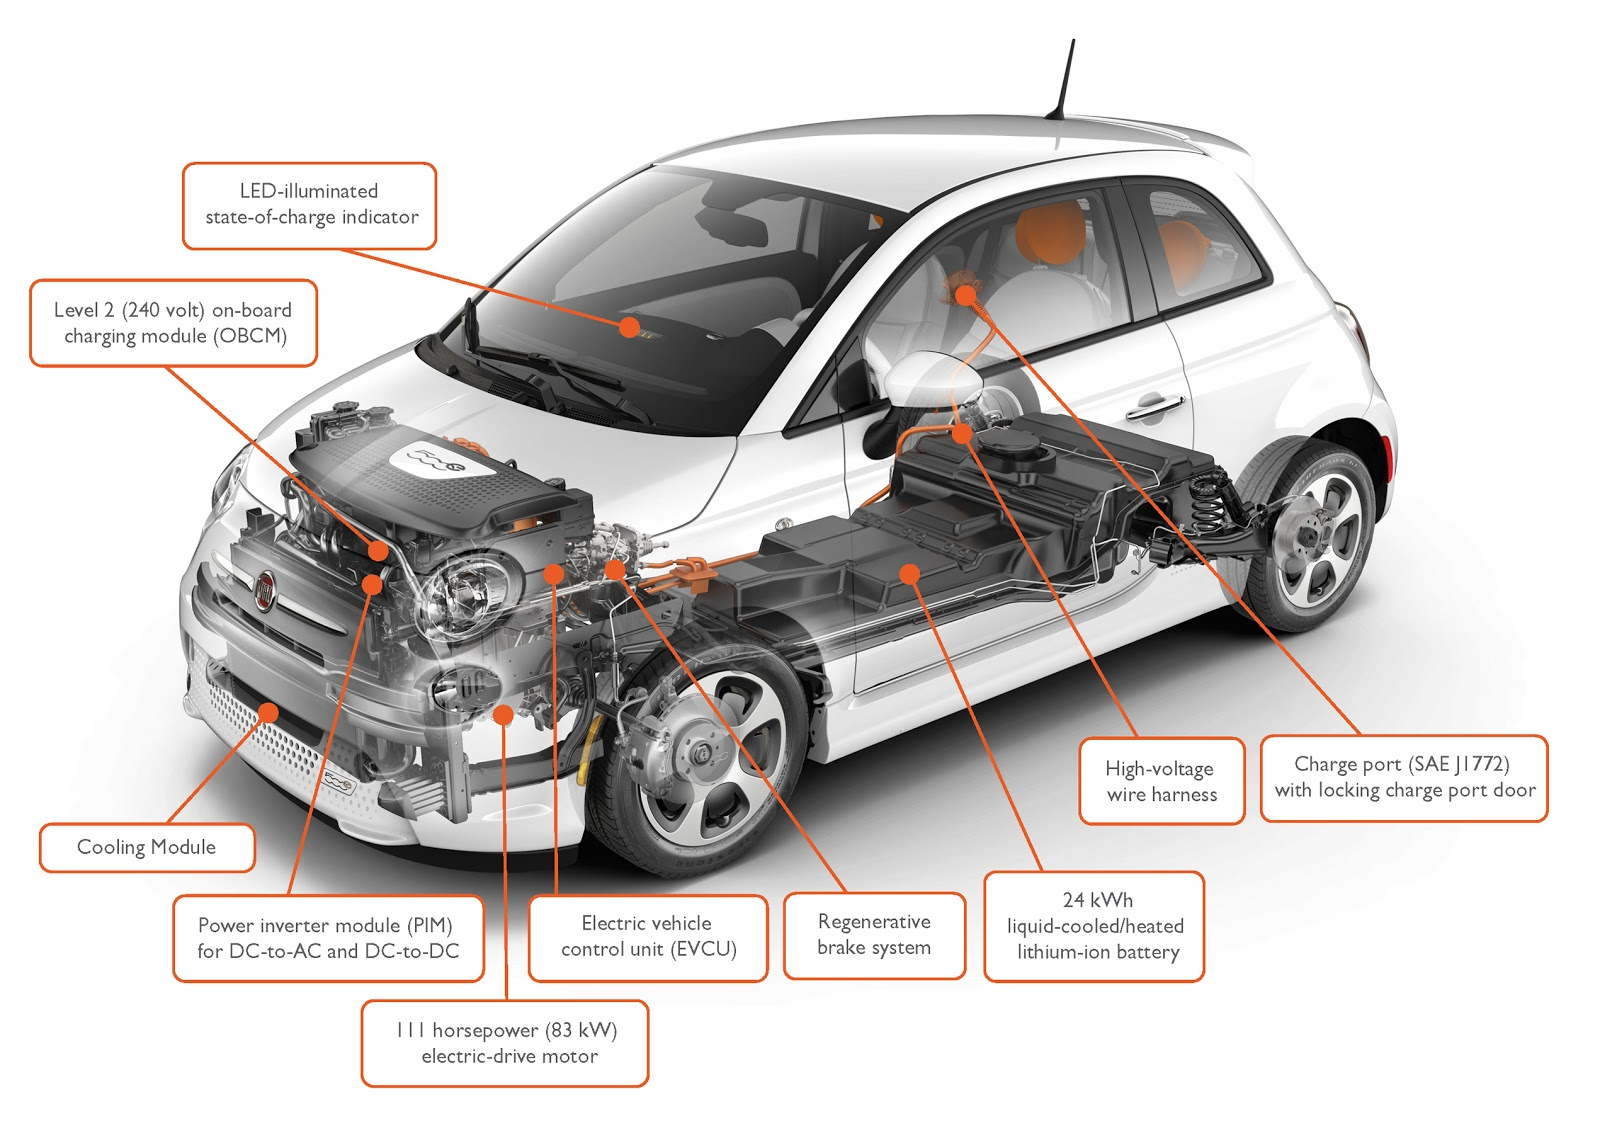 Index Of Users Y V Yvb5072 Final Images Electric Car Schematic Get Free Image About Wiring Diagram Fiat 500e Specs 6